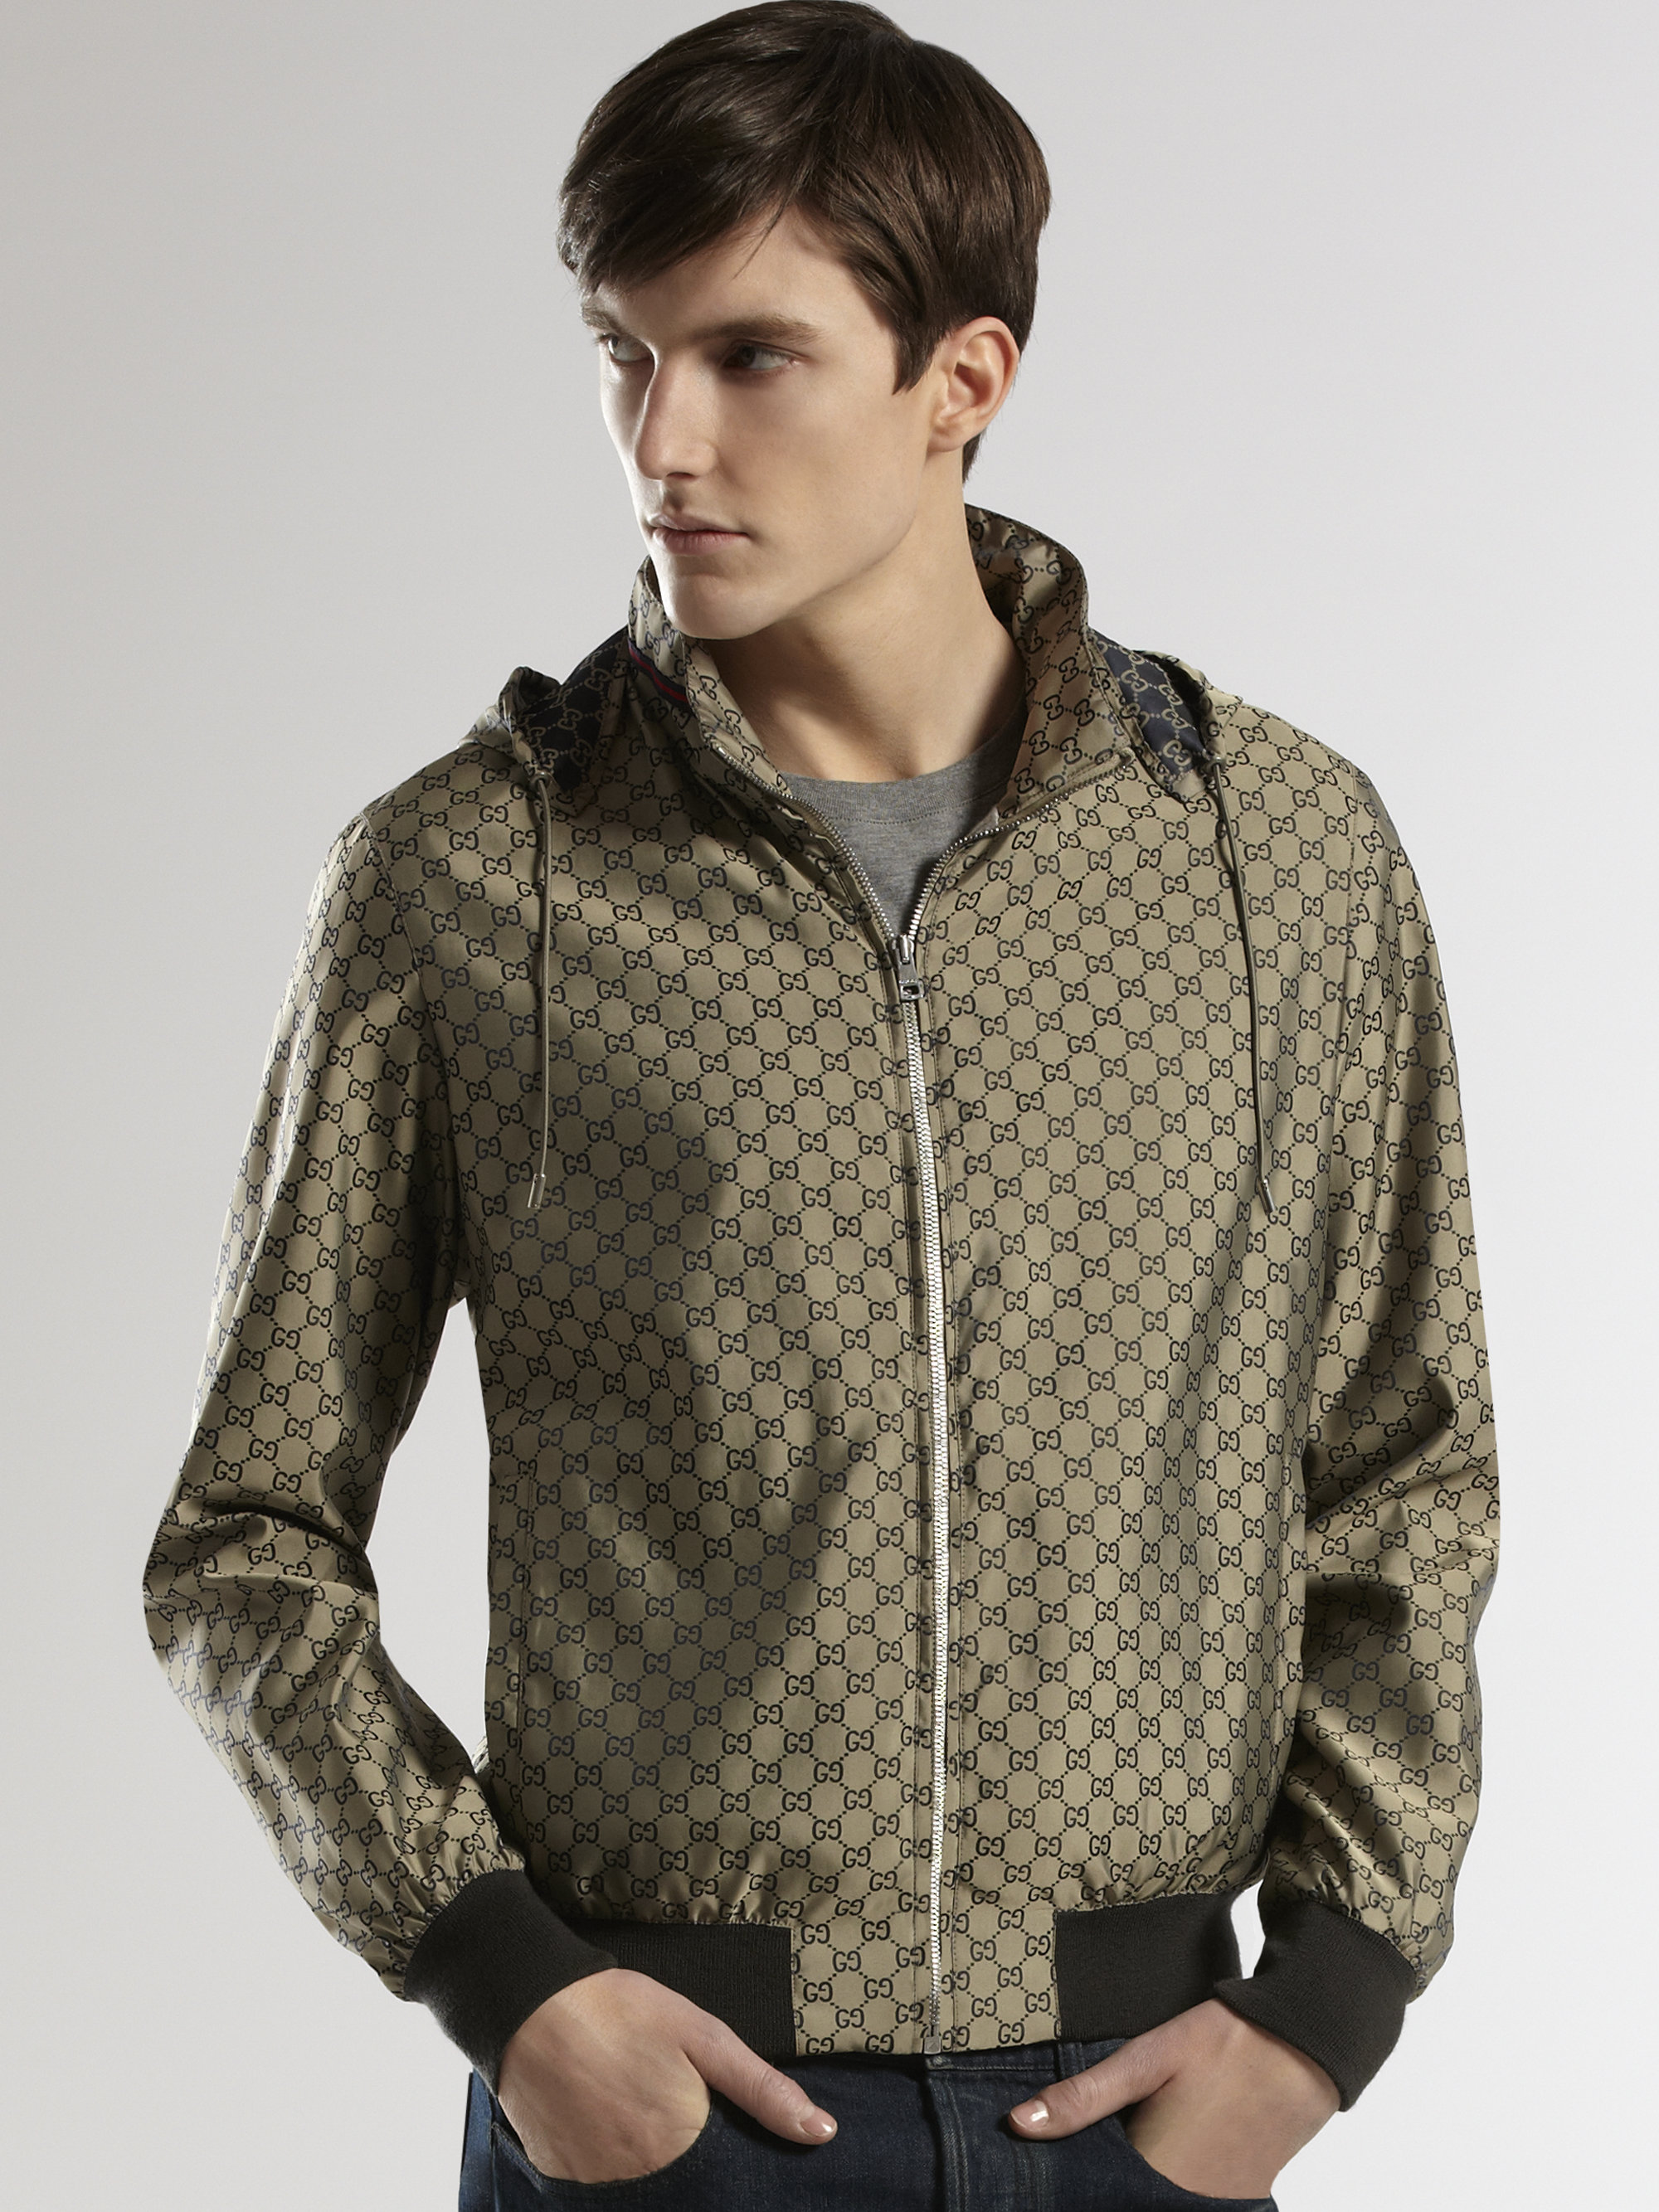 Gucci Gg Nylon Kway Jacket in Gray for Men